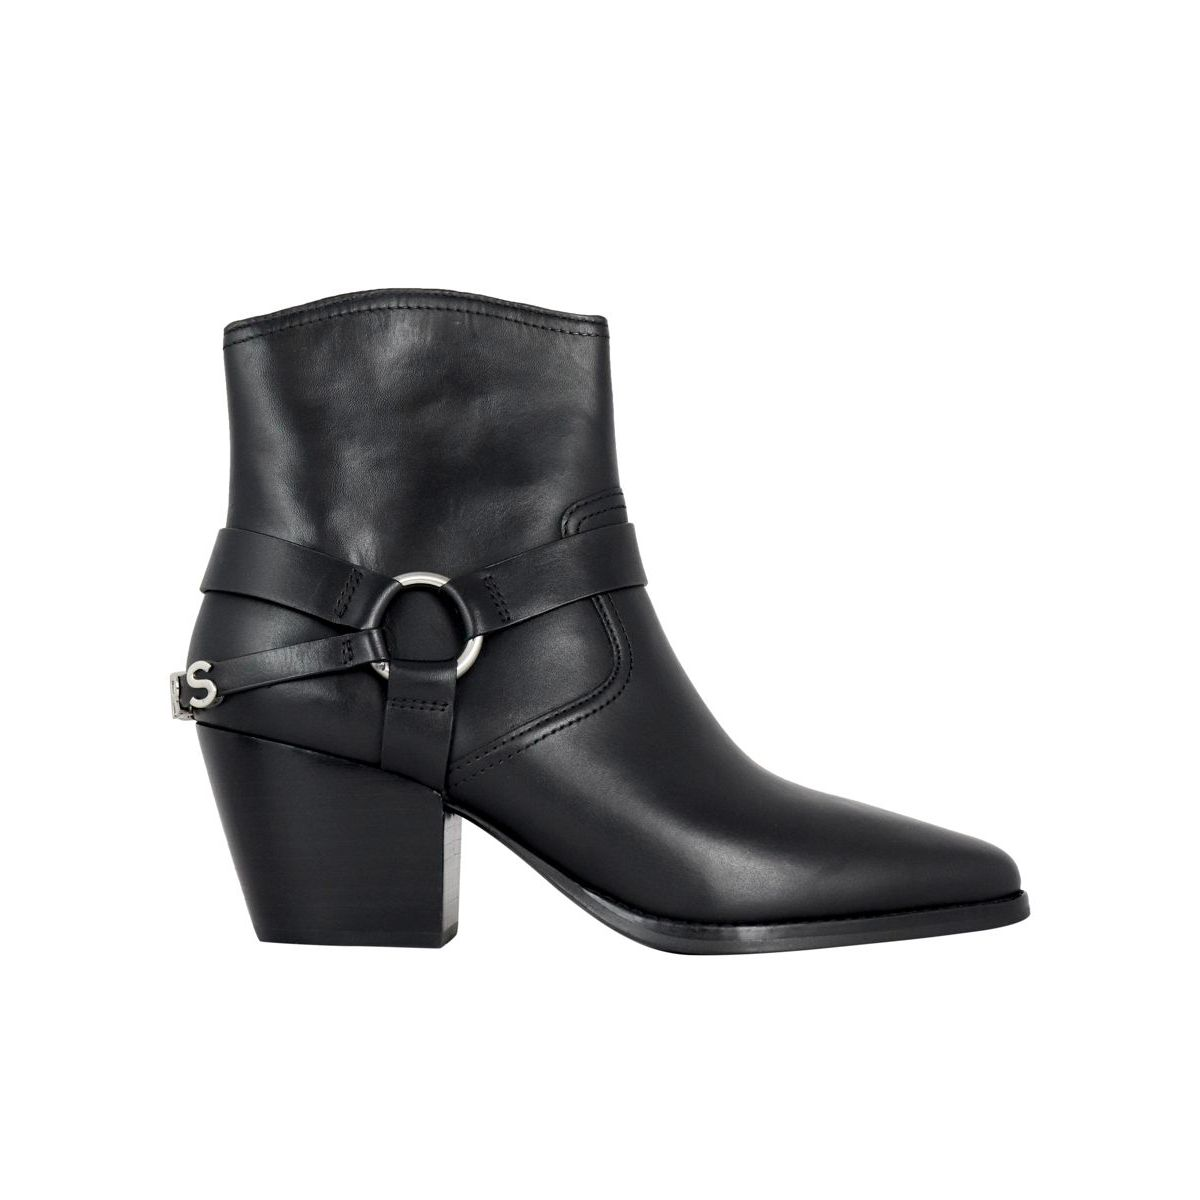 Bootie Goldie Black Michael Kors